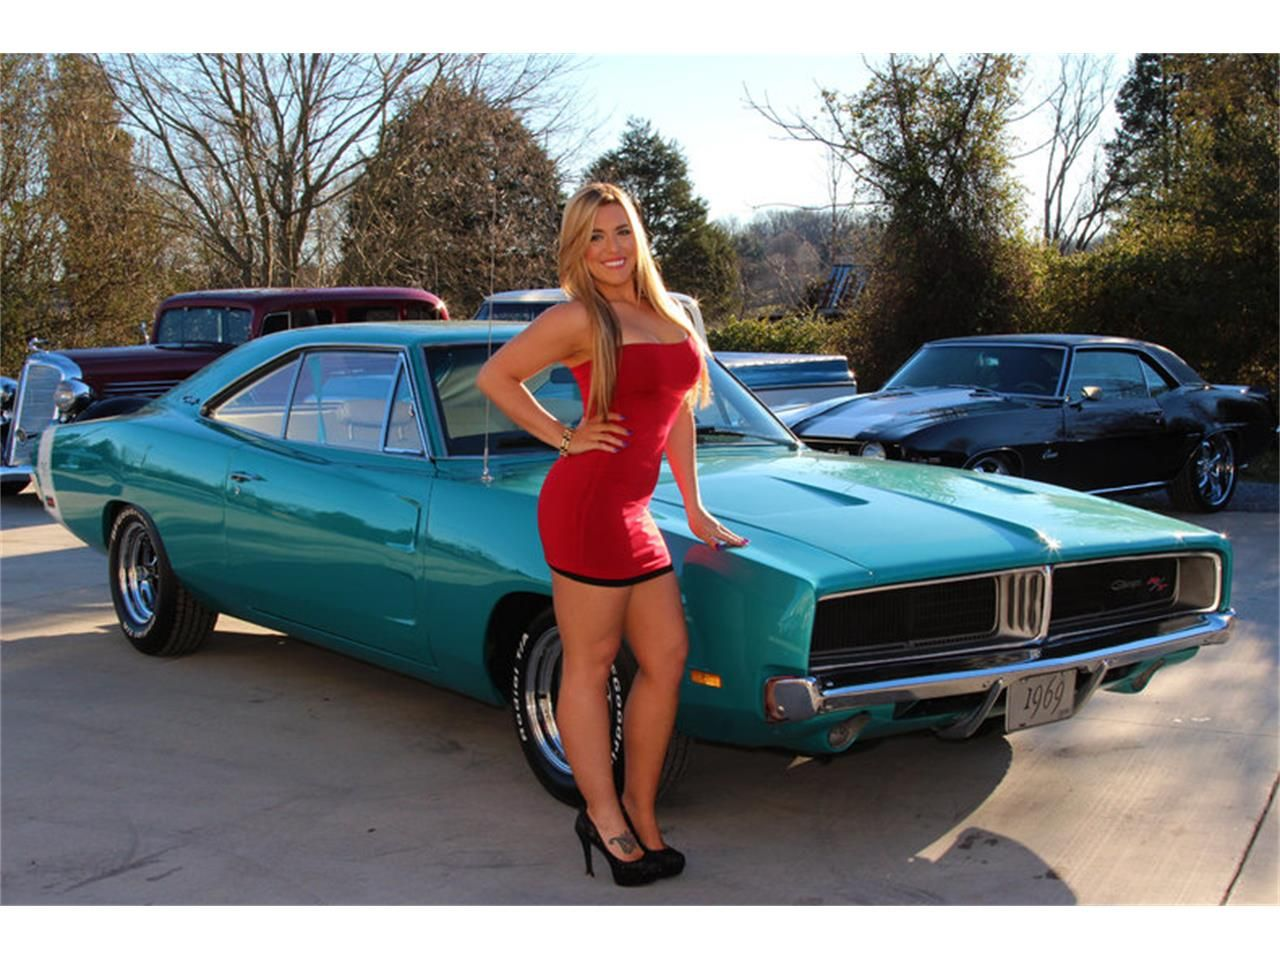 Rather Dodge charger hot girls